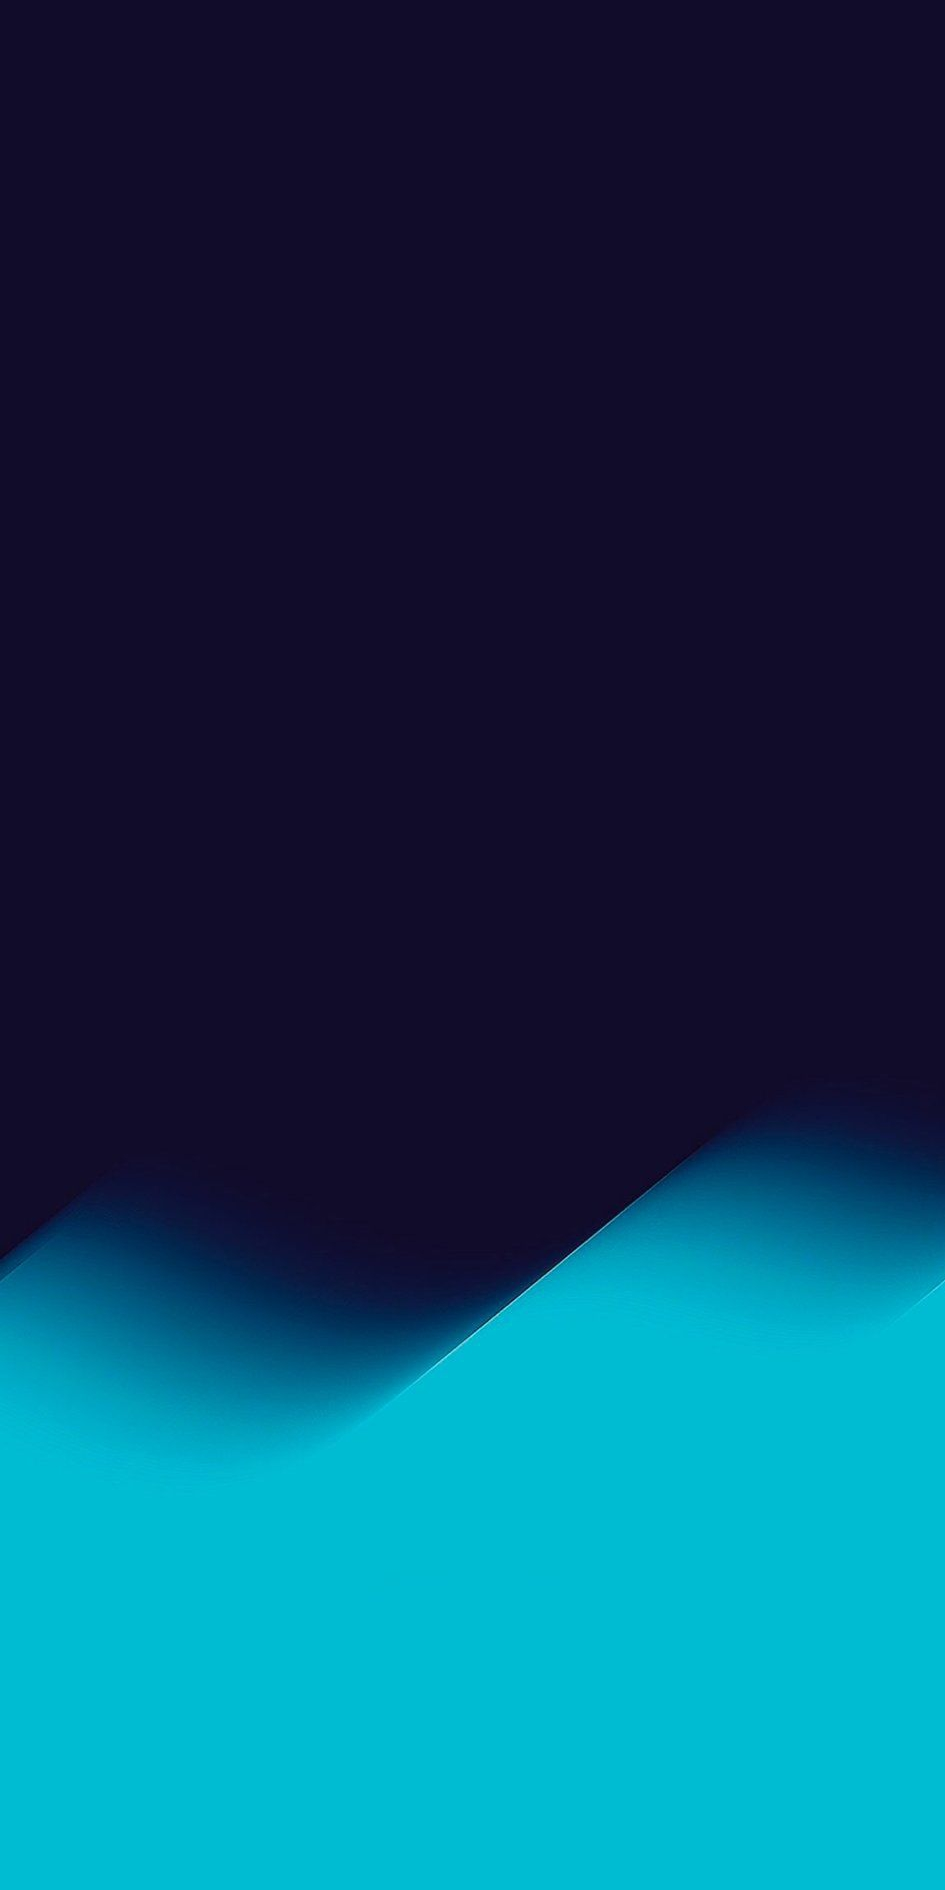 Aqua Background iPhone Wallpaper